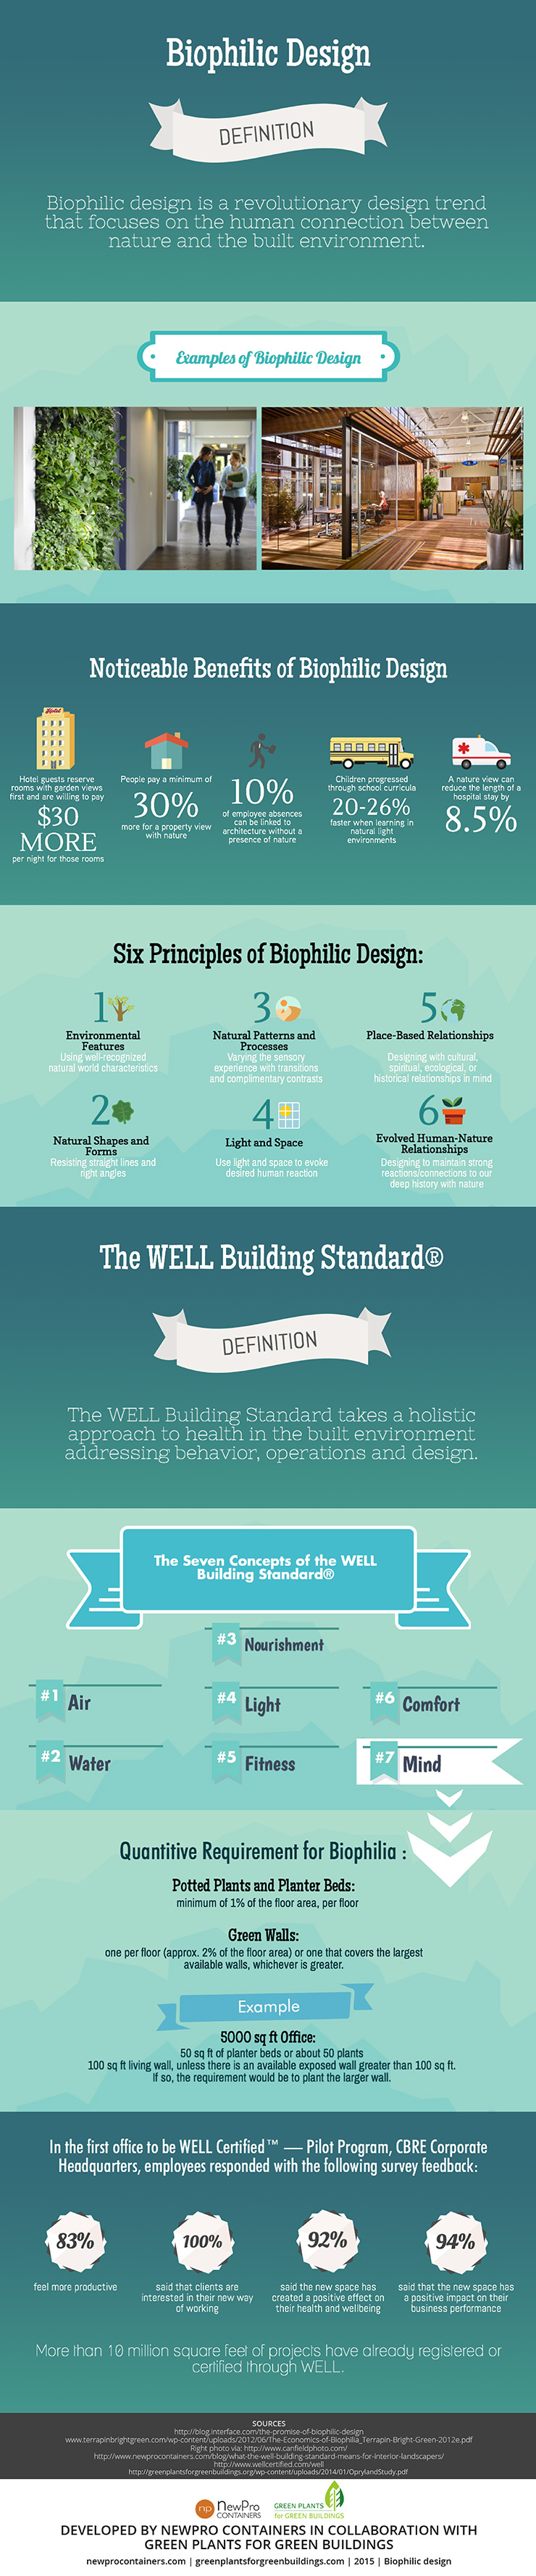 Biophilic Design & The WELL Building Standard